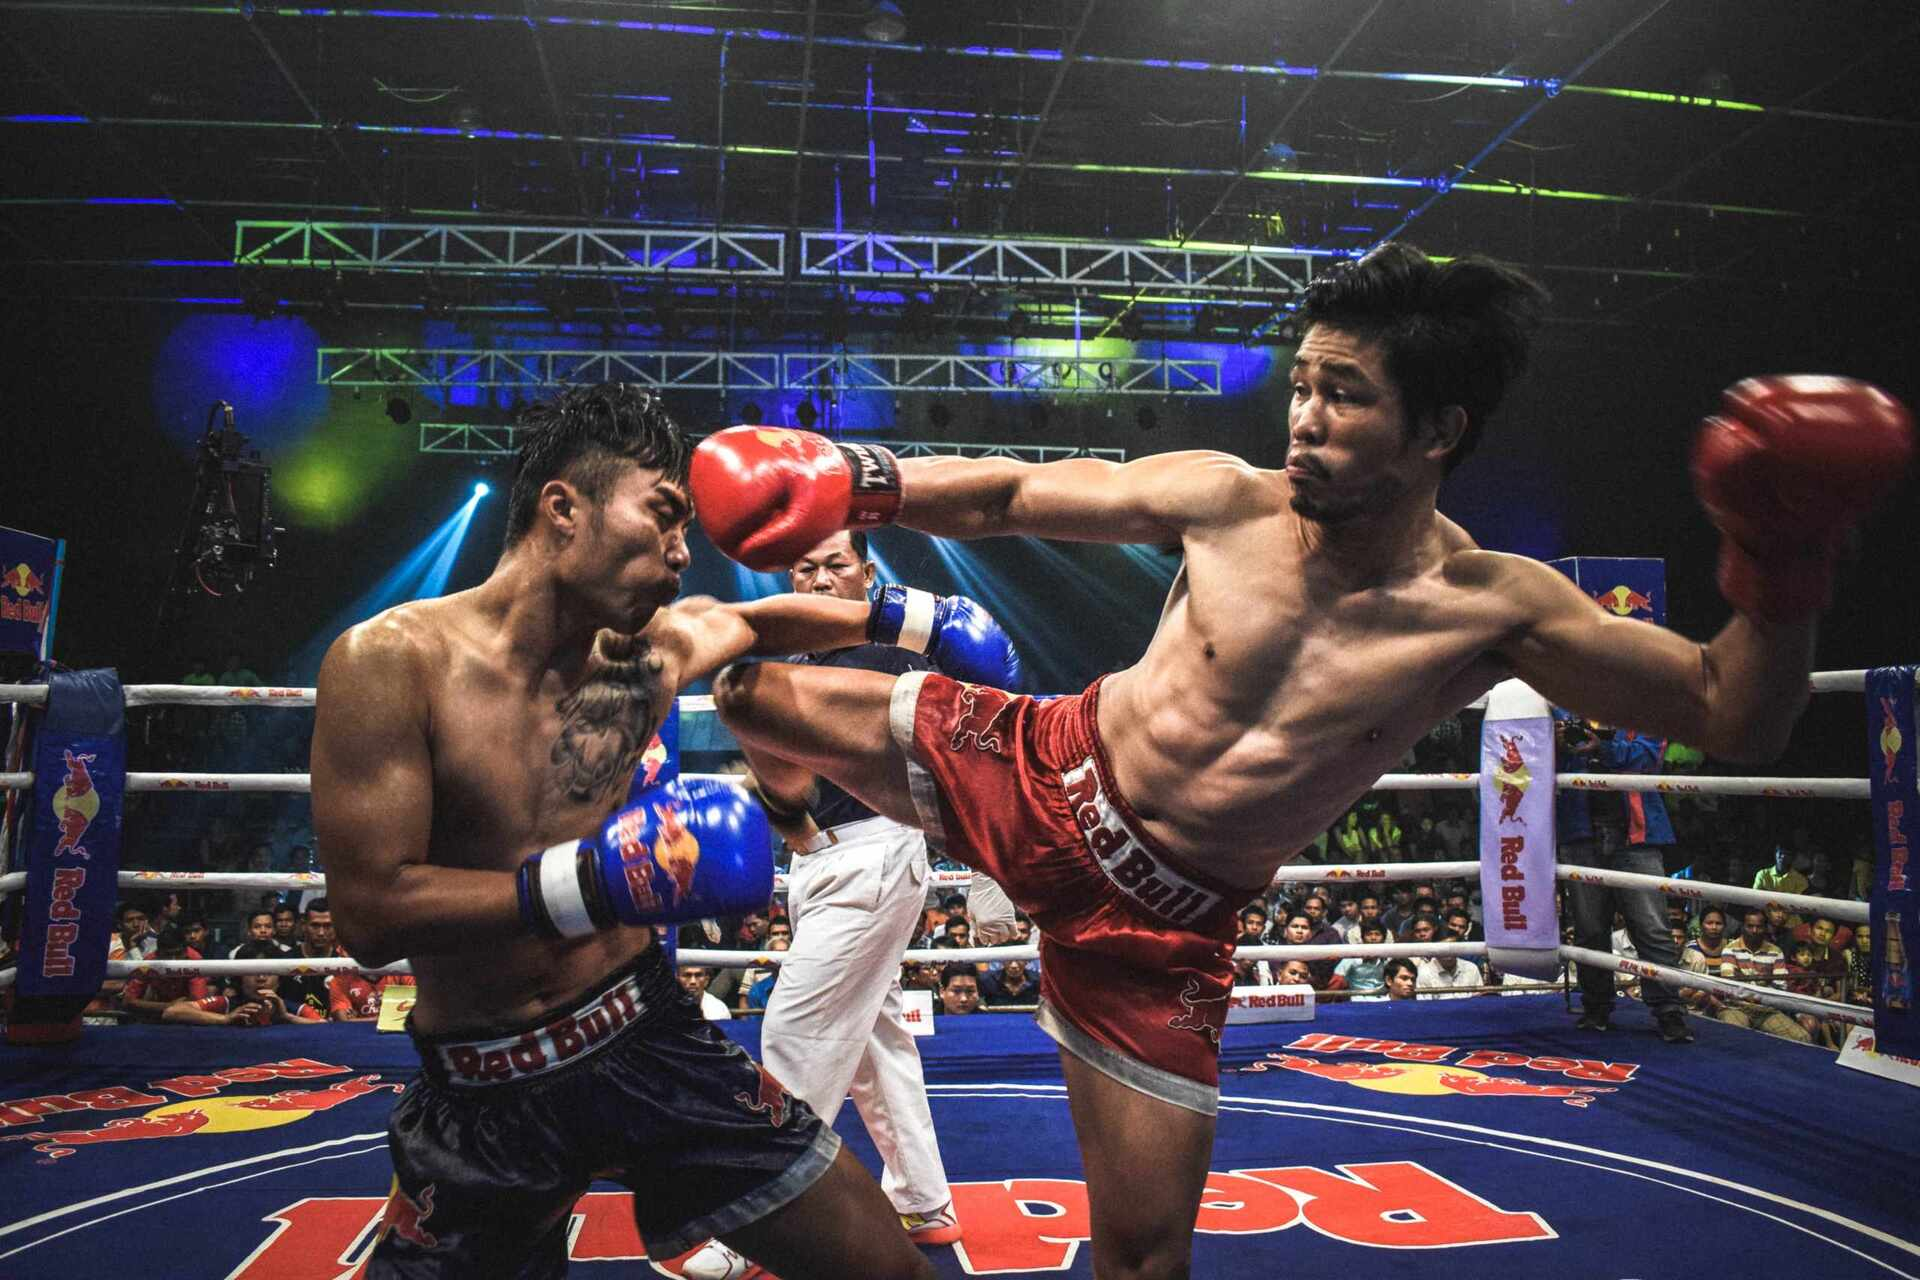 SuWit Muay Thai in Thailand is the New for Good Health